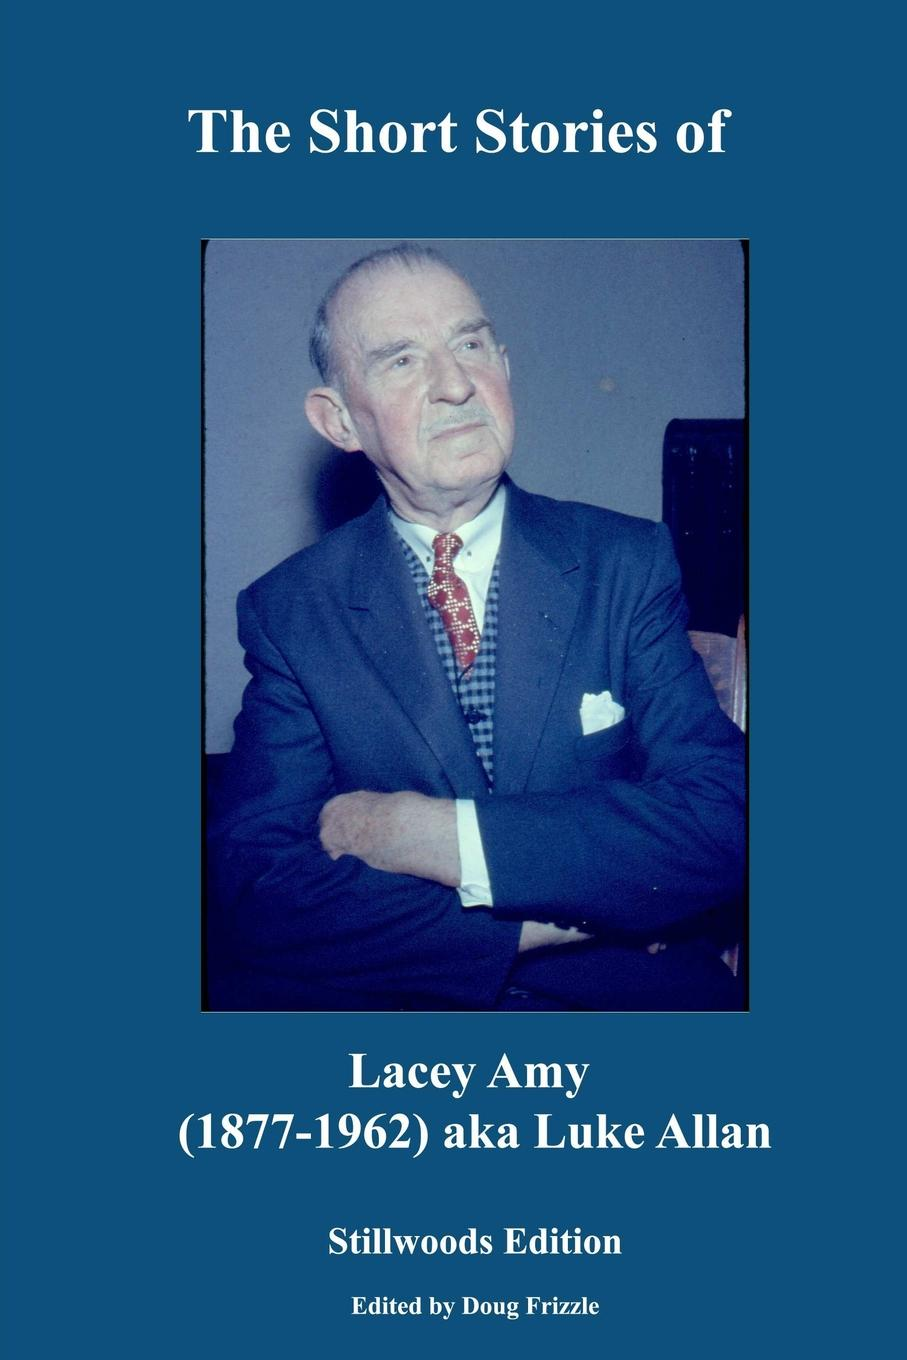 Lacey Amy The Short Stories of Lacey Amy недорого